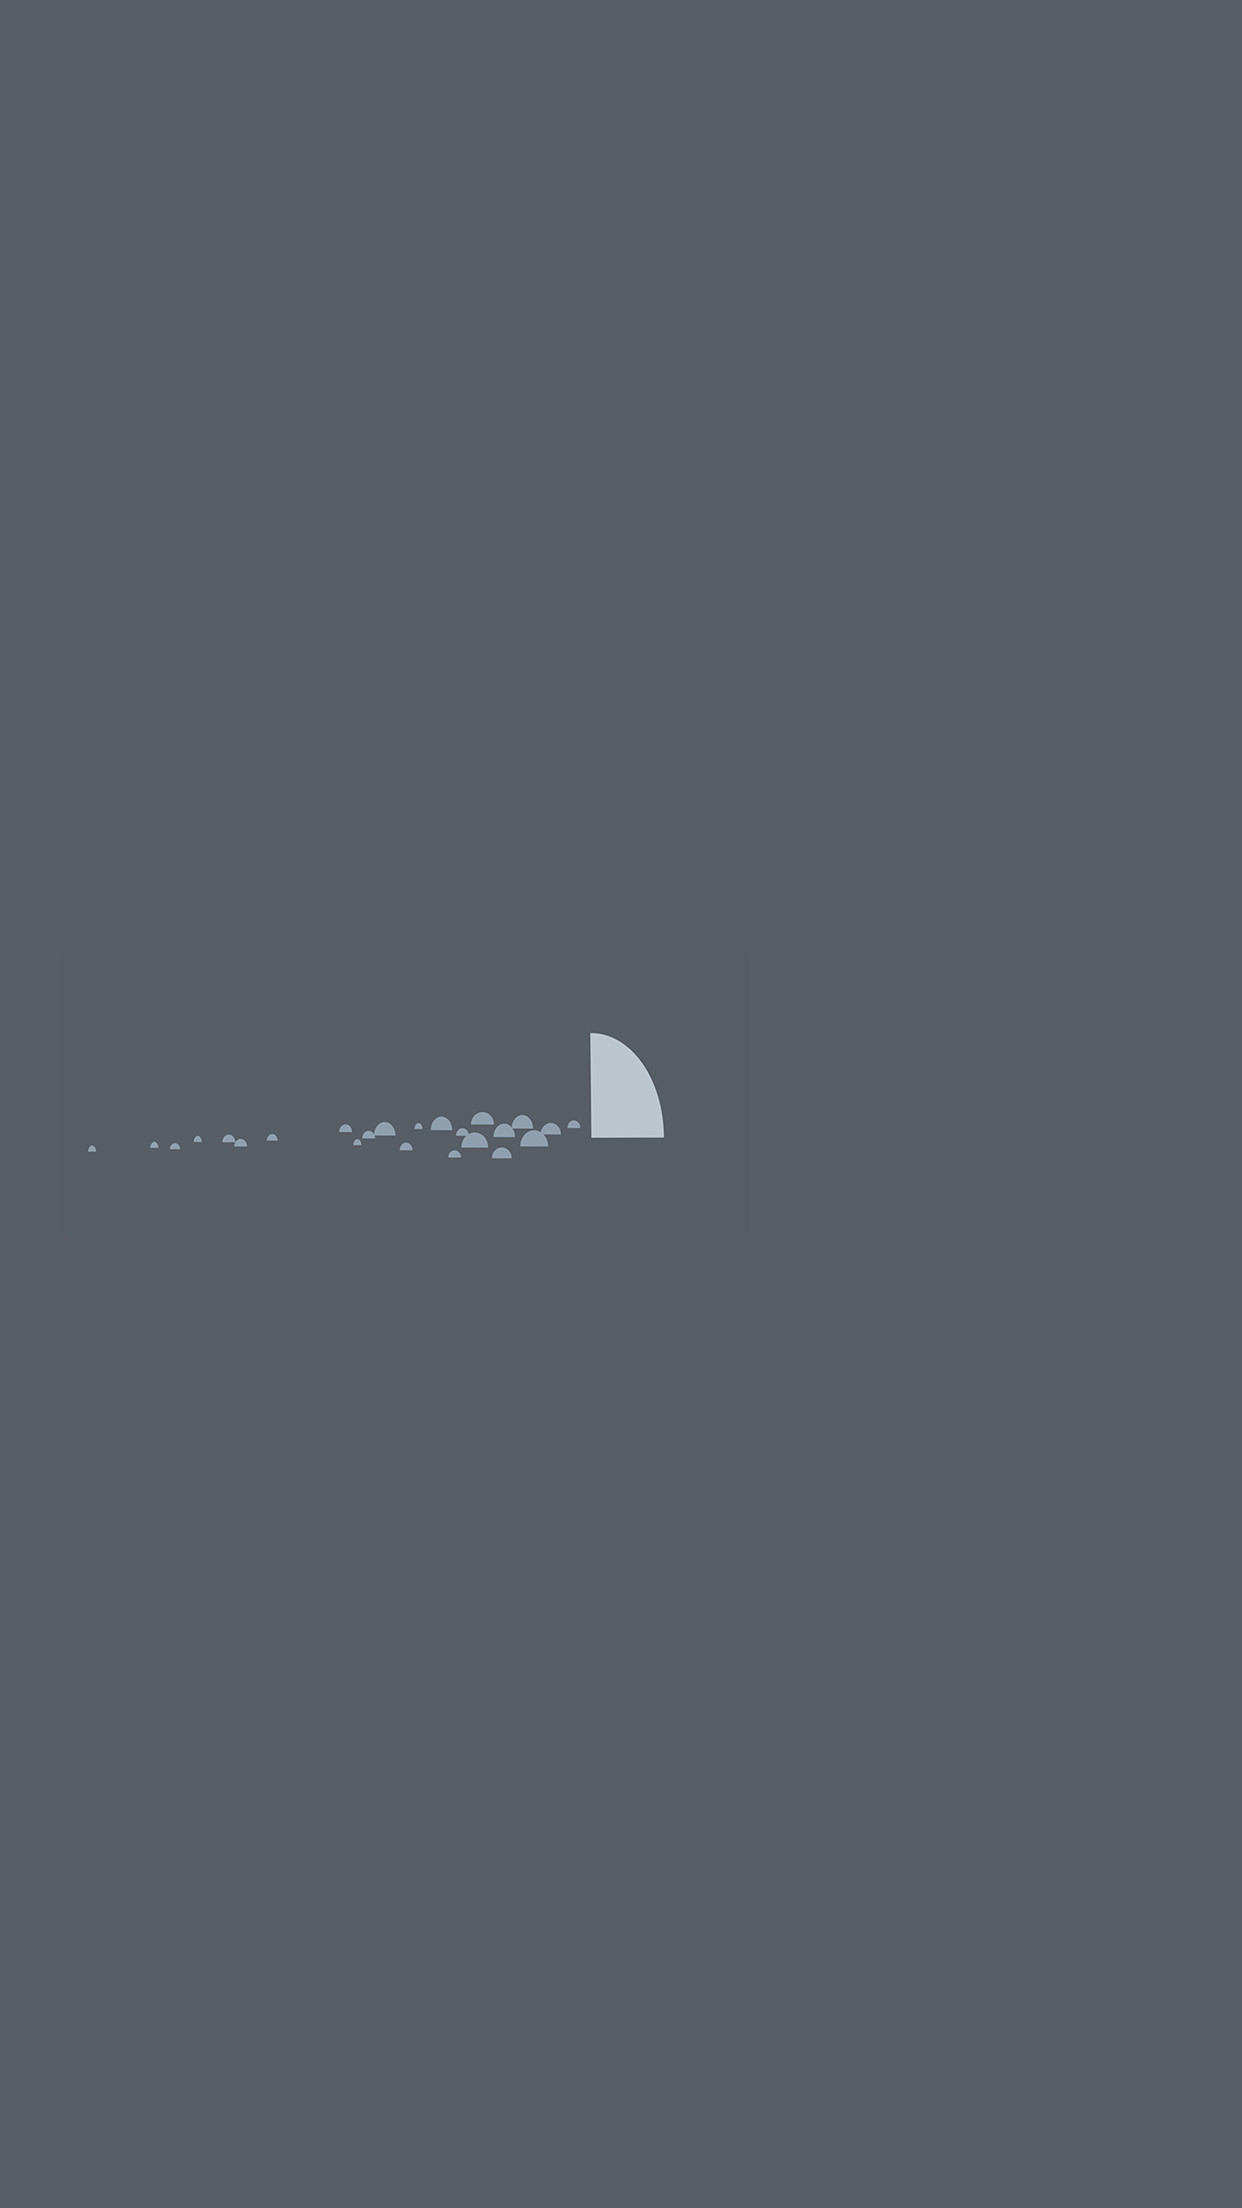 1242x2208 Iphone6papers An32 Minimal Simple Shark Sea Il Art